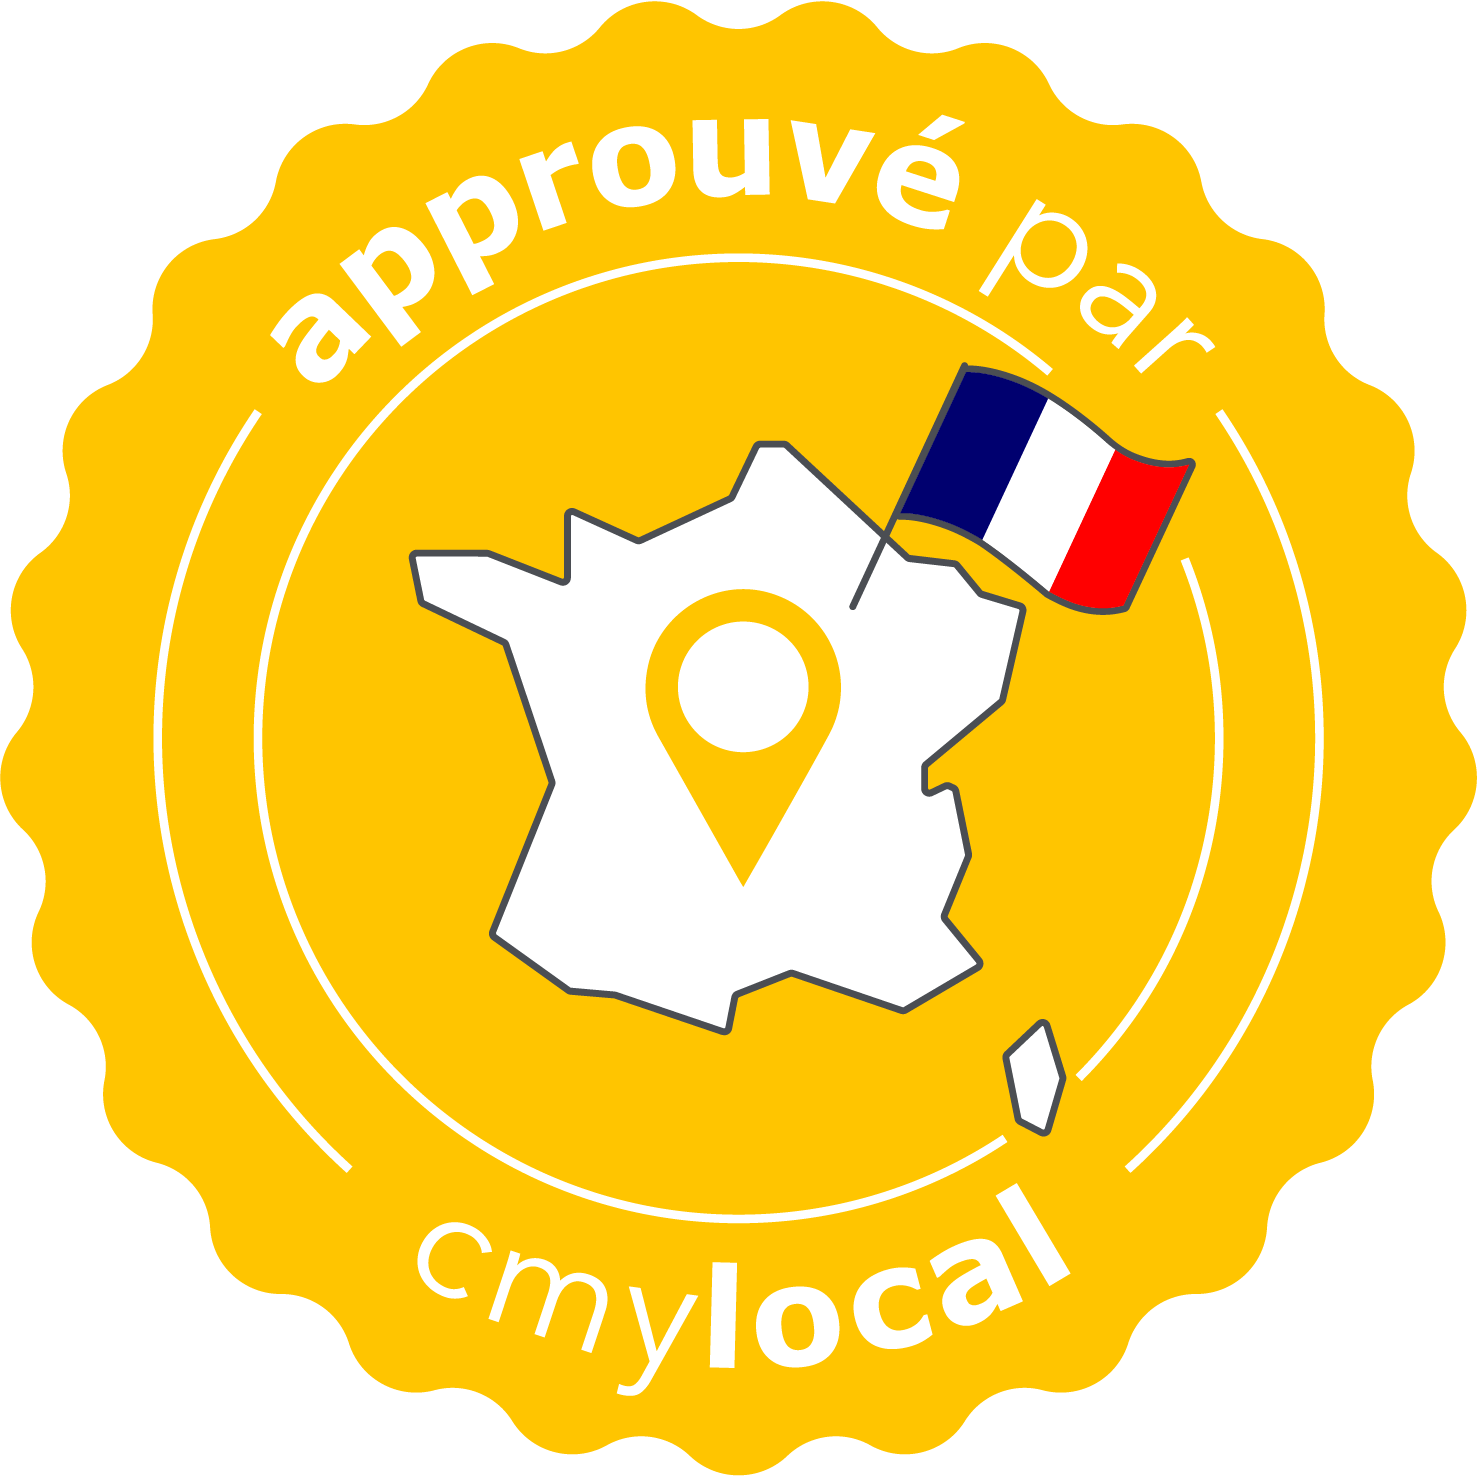 Cmylocal